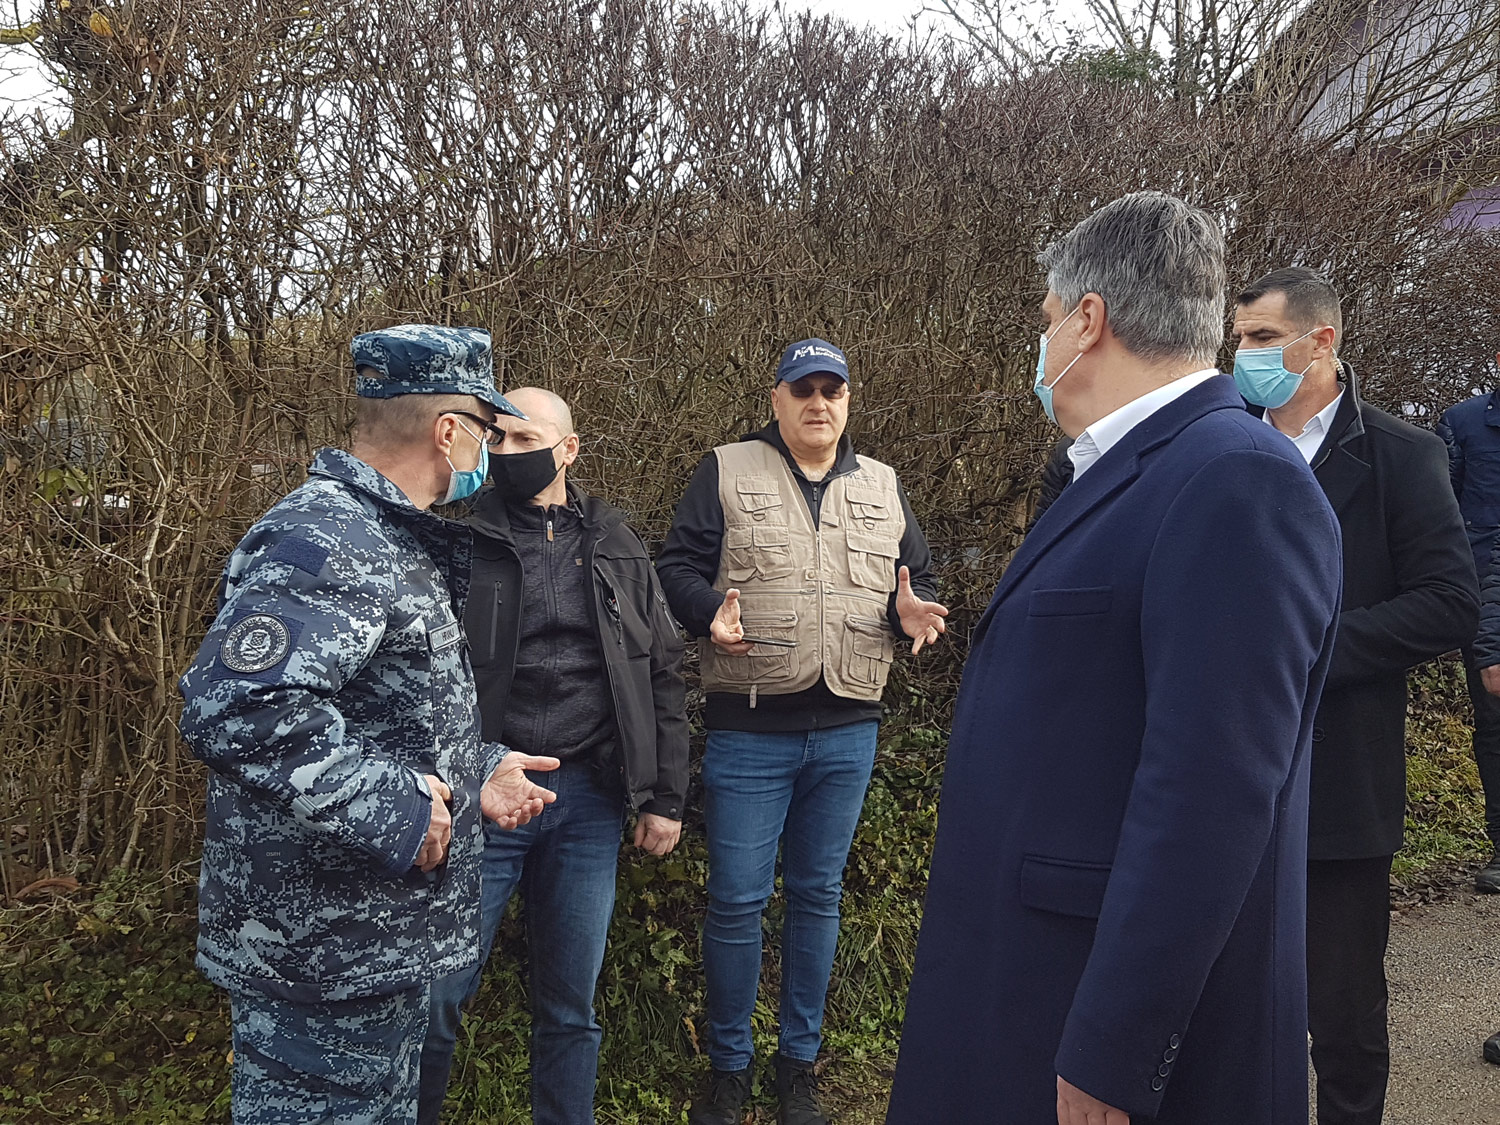 International Medical Corps Team joins the President of the Republic of Croatia's visit to the hard hit village of Strasnik.